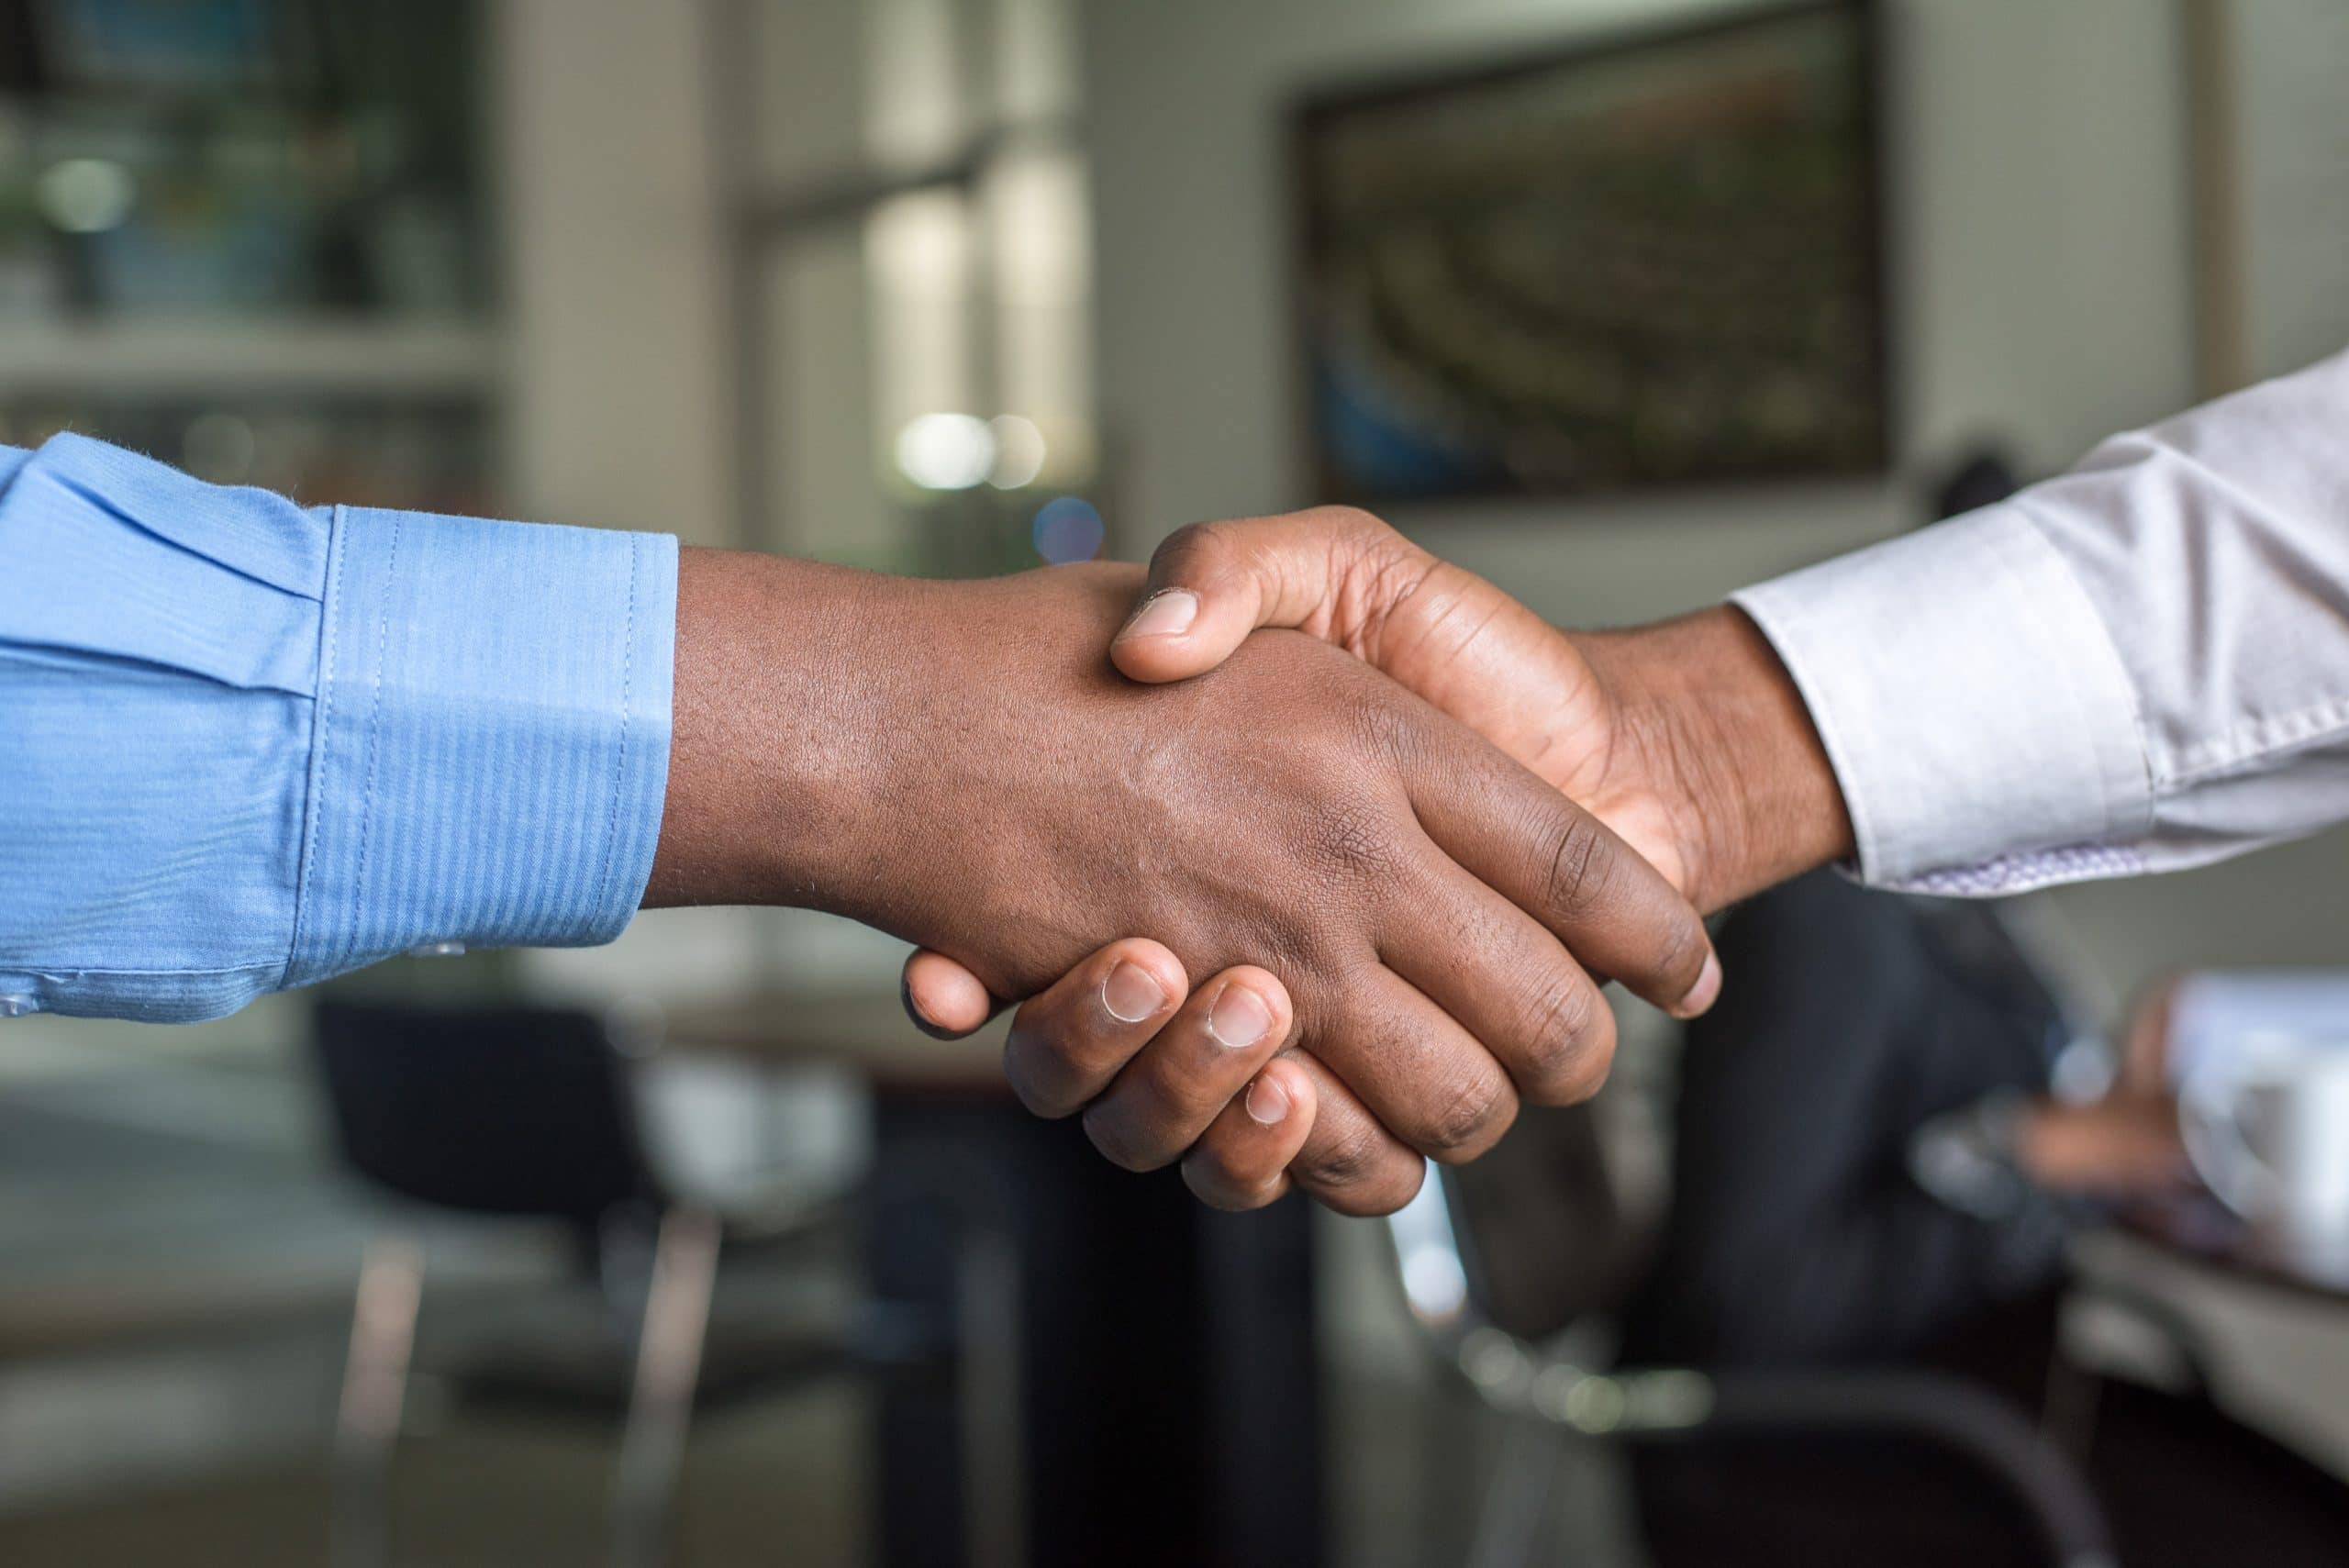 How to prepare a professional video resume - An image of two people shaking hands